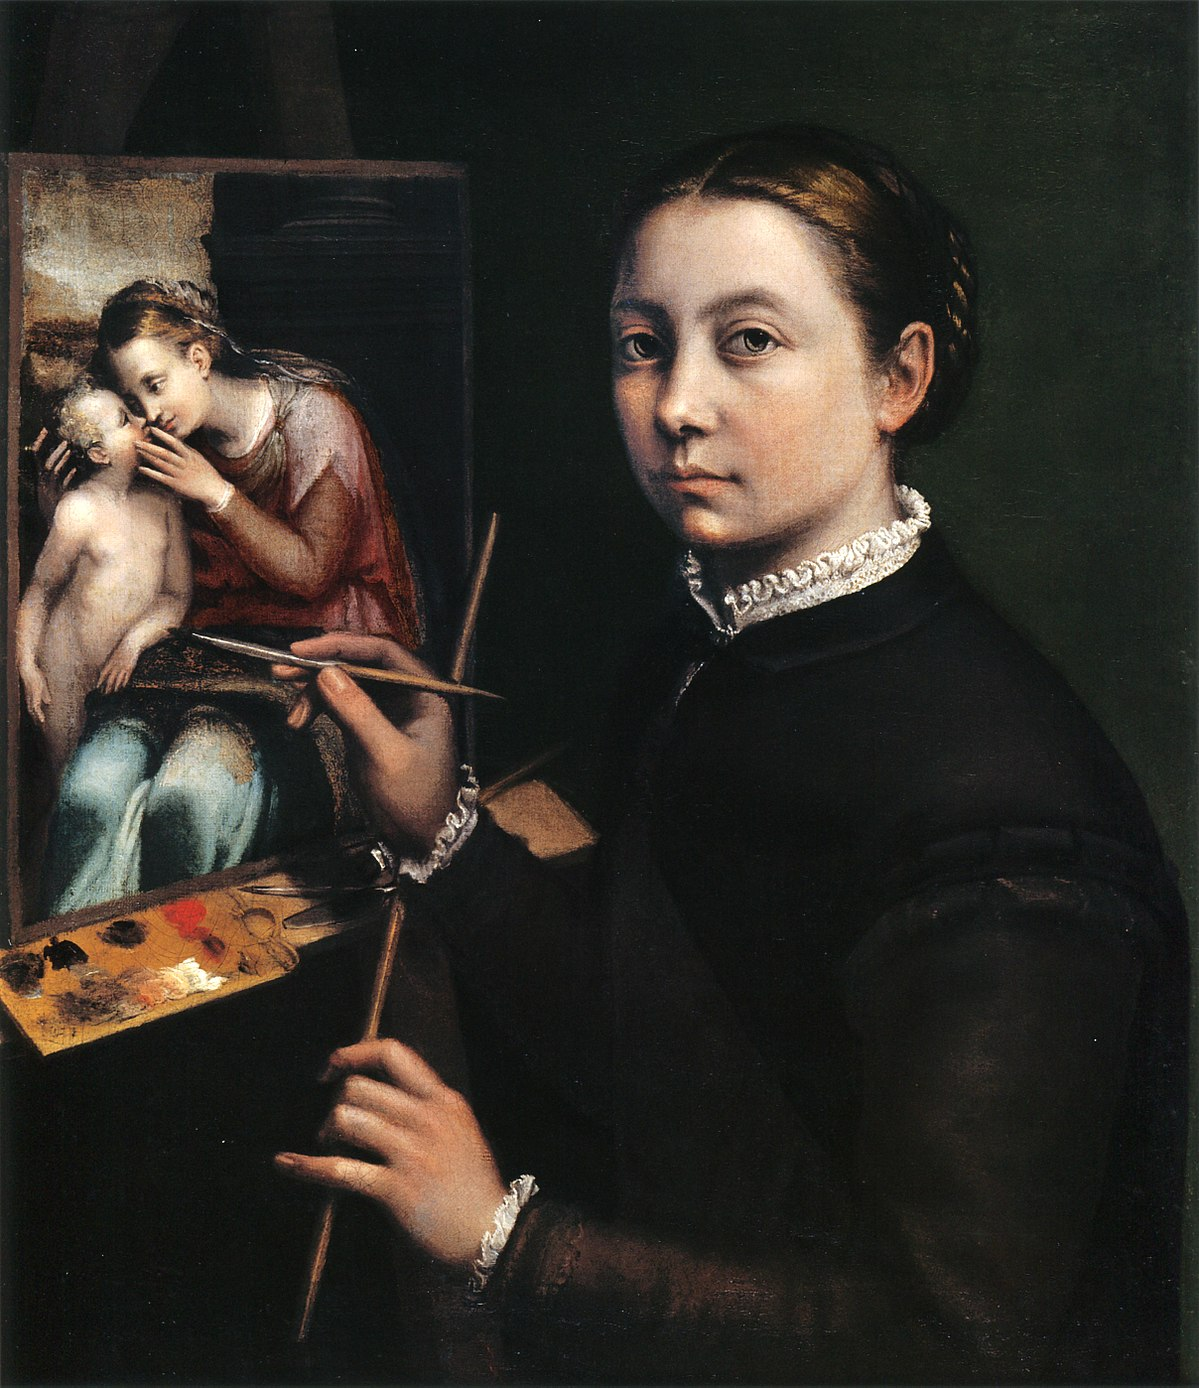 https://upload.wikimedia.org/wikipedia/commons/thumb/5/56/Self-portrait_at_the_Easel_Painting_a_Devotional_Panel_by_Sofonisba_Anguissola.jpg/1200px-Self-portrait_at_the_Easel_Painting_a_Devotional_Panel_by_Sofonisba_Anguissola.jpg